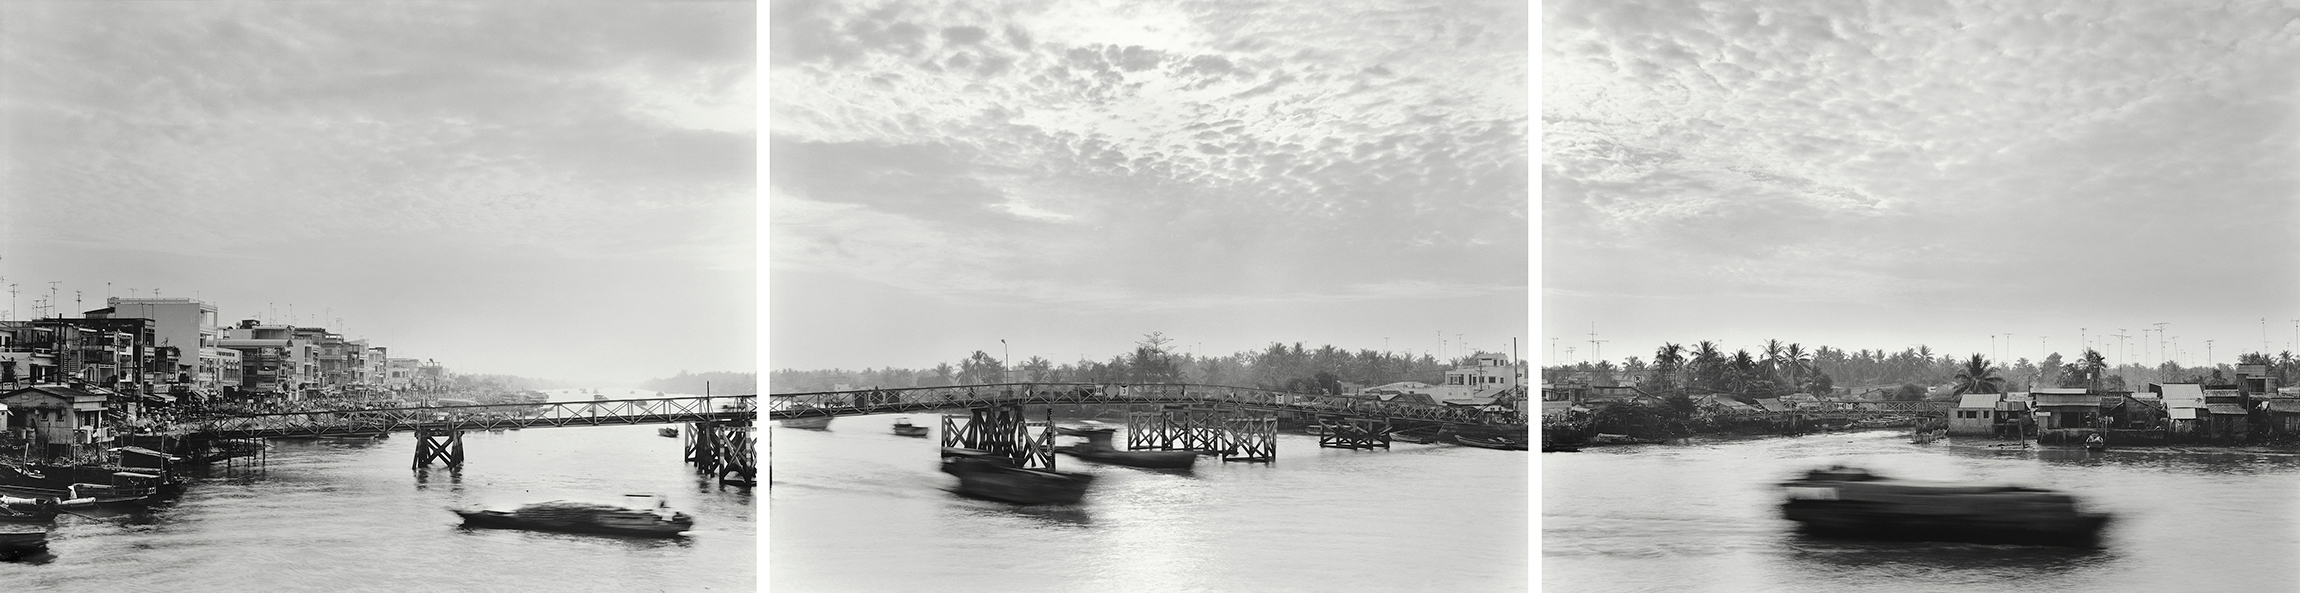 Ben-Tre-Bridge.jpg